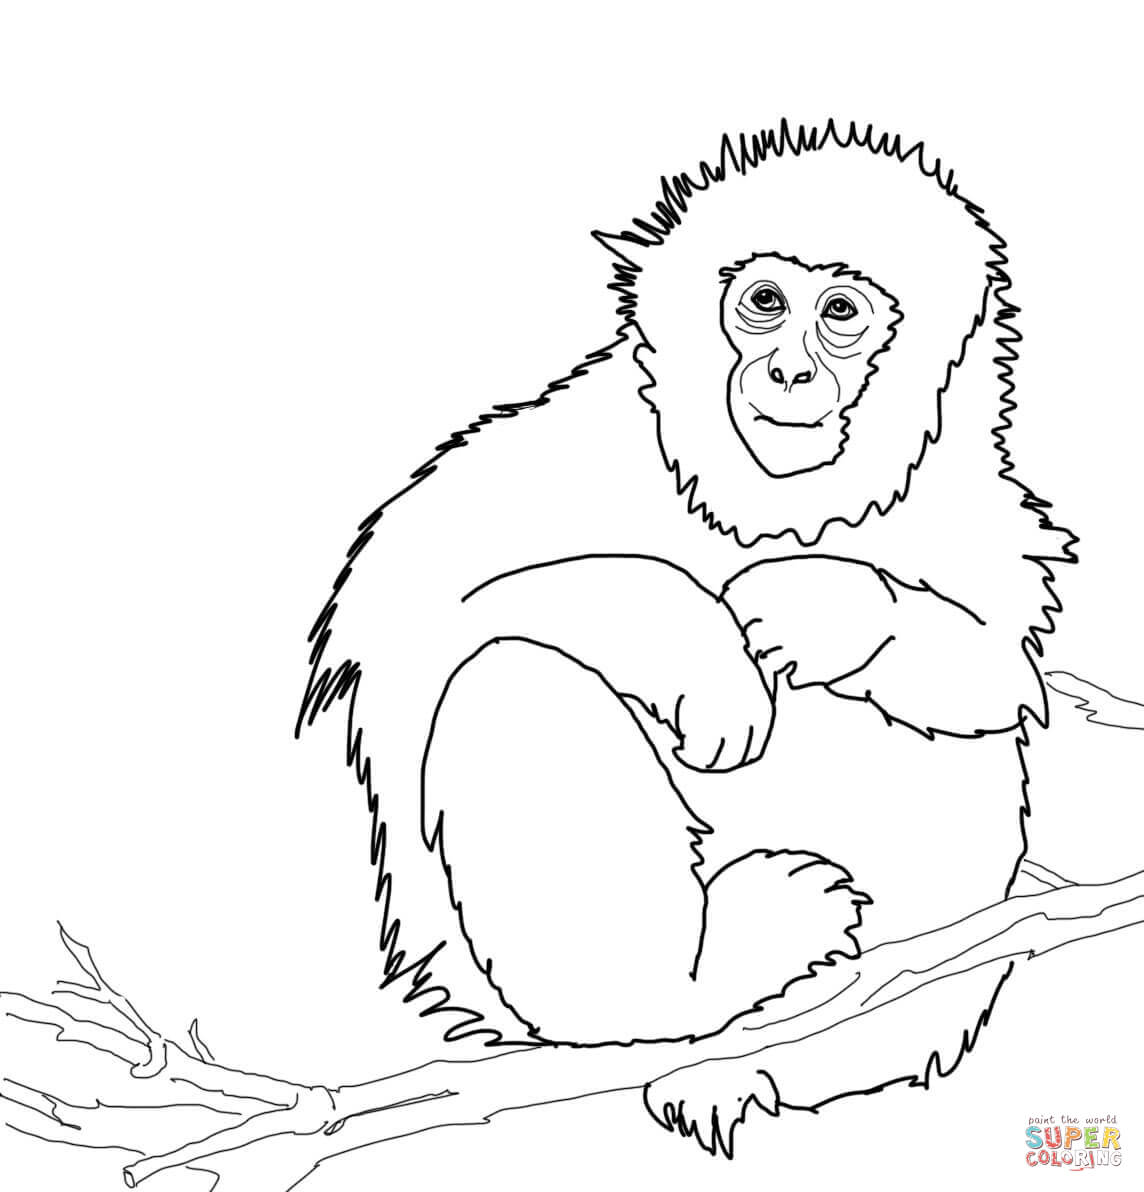 Snow Monkey clipart #9, Download drawings